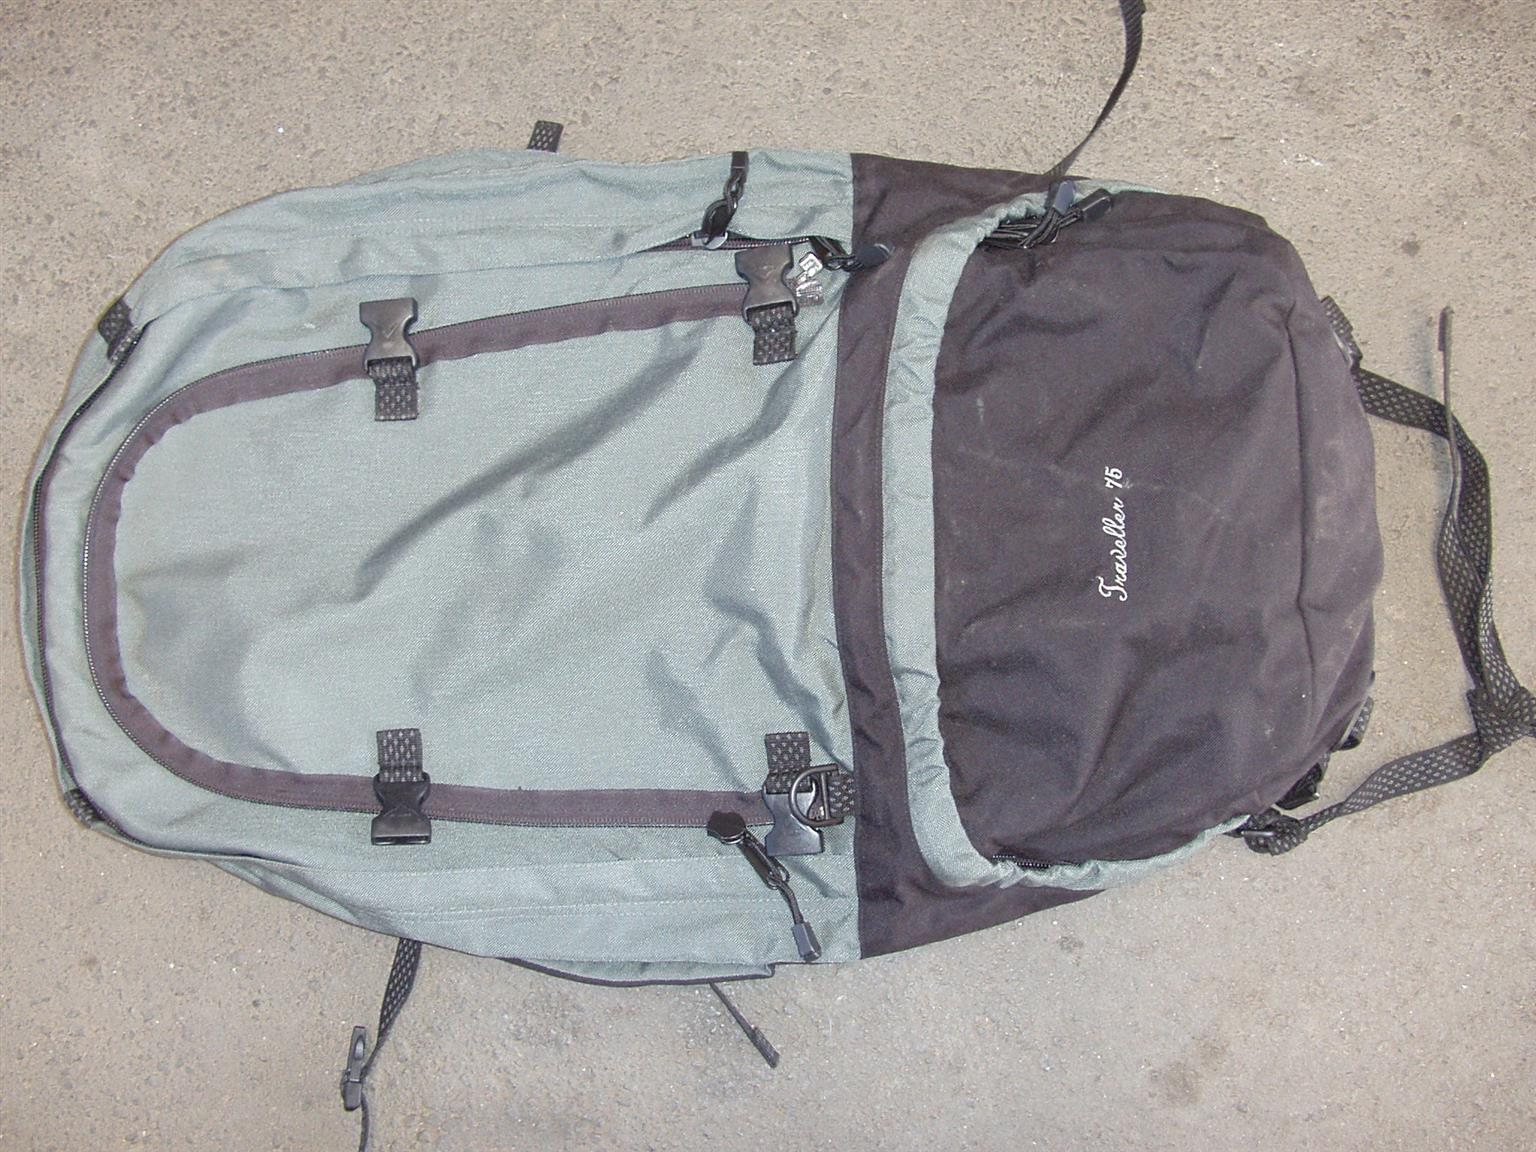 Back Pack - K-Way Traveller 75L Travel Pack -As New